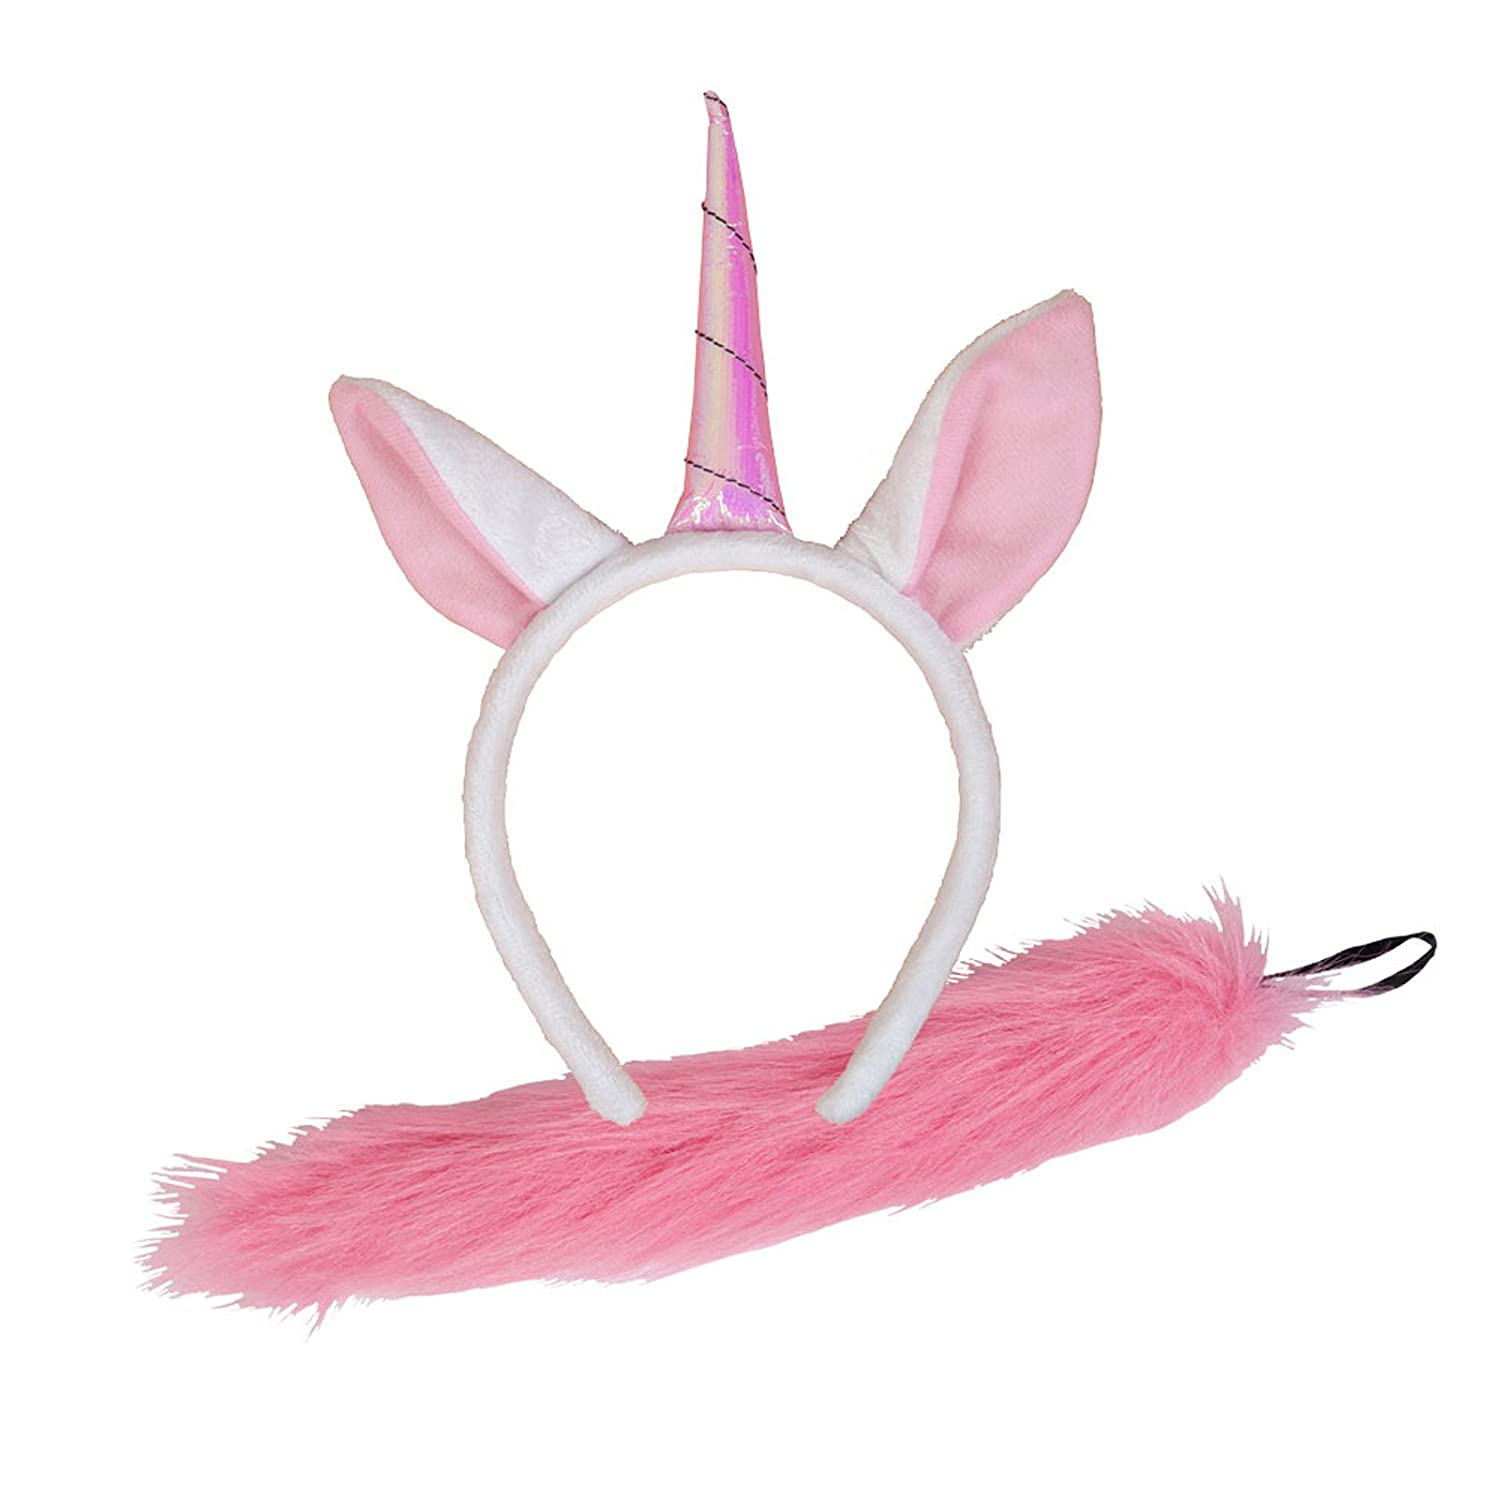 Wicked Costumes Animal Ears   Tail Set Pink Unicorn Fancy Dress Accessory  Plush Halloween  Amazon.co.uk  Toys   Games 05b8c5e7a06